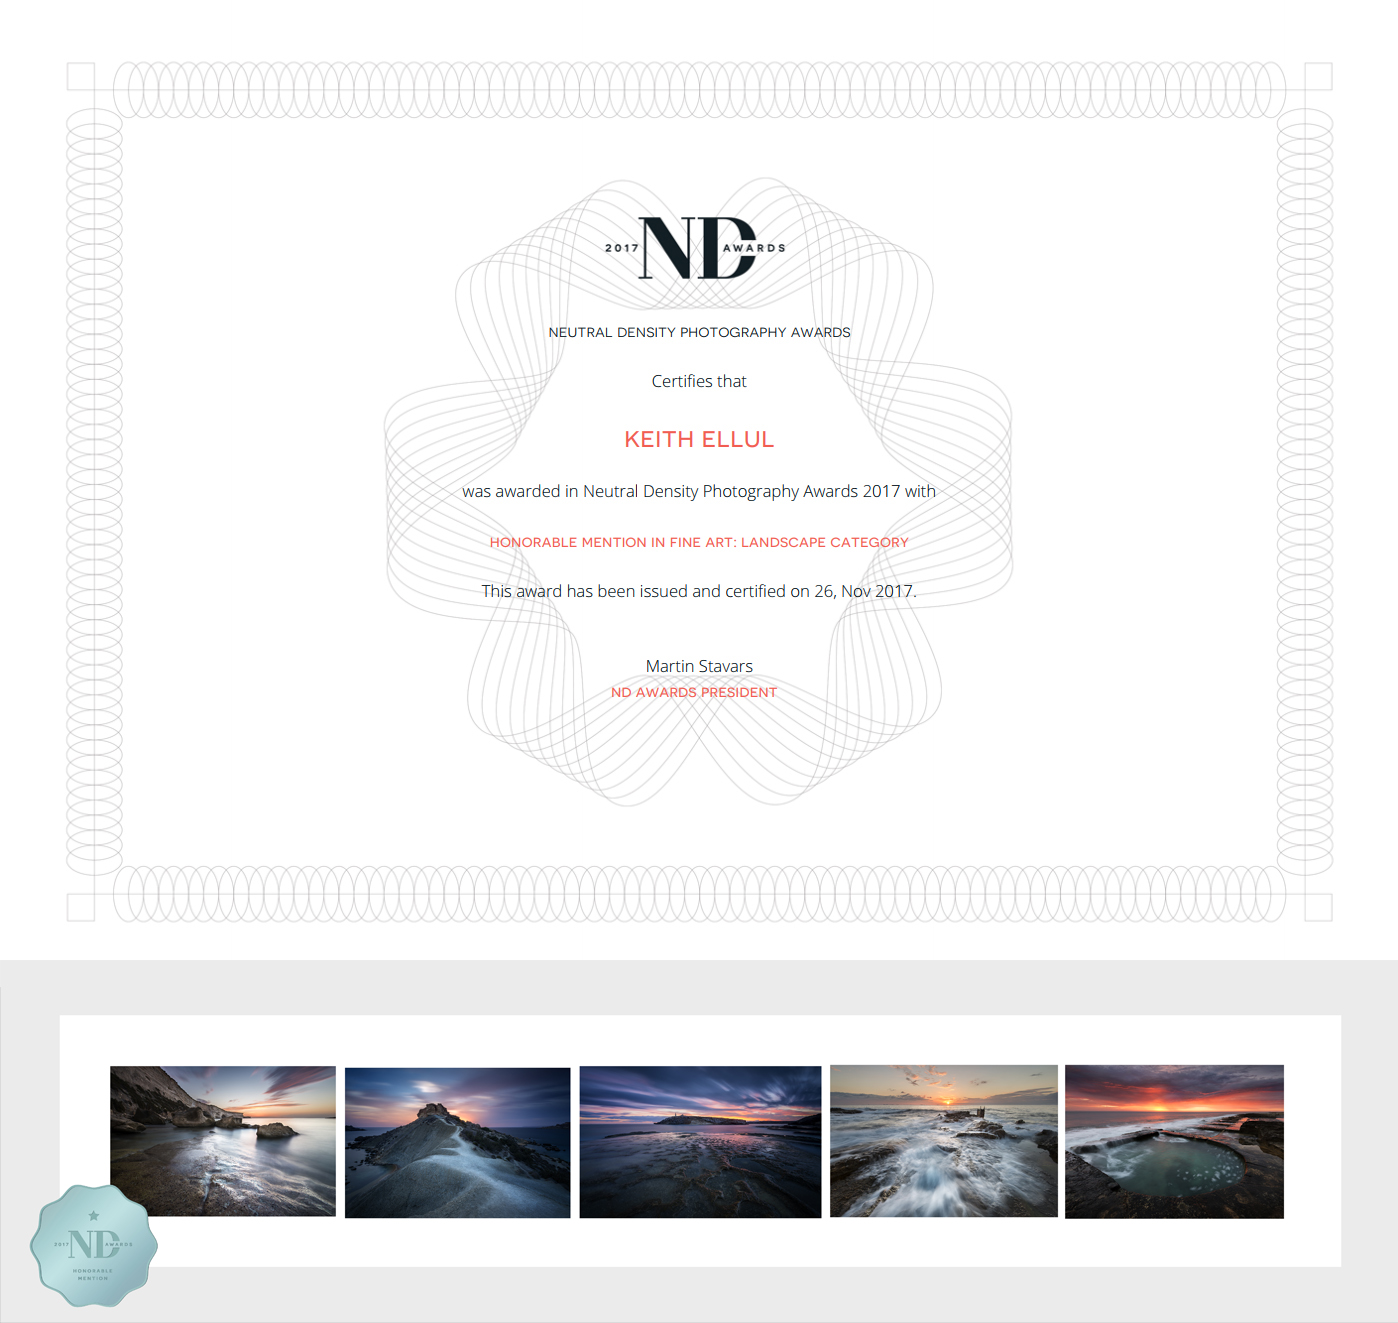 Neutral Density Photography Awards 2017 - Honorable Mention - Fine Art - Landscape Category